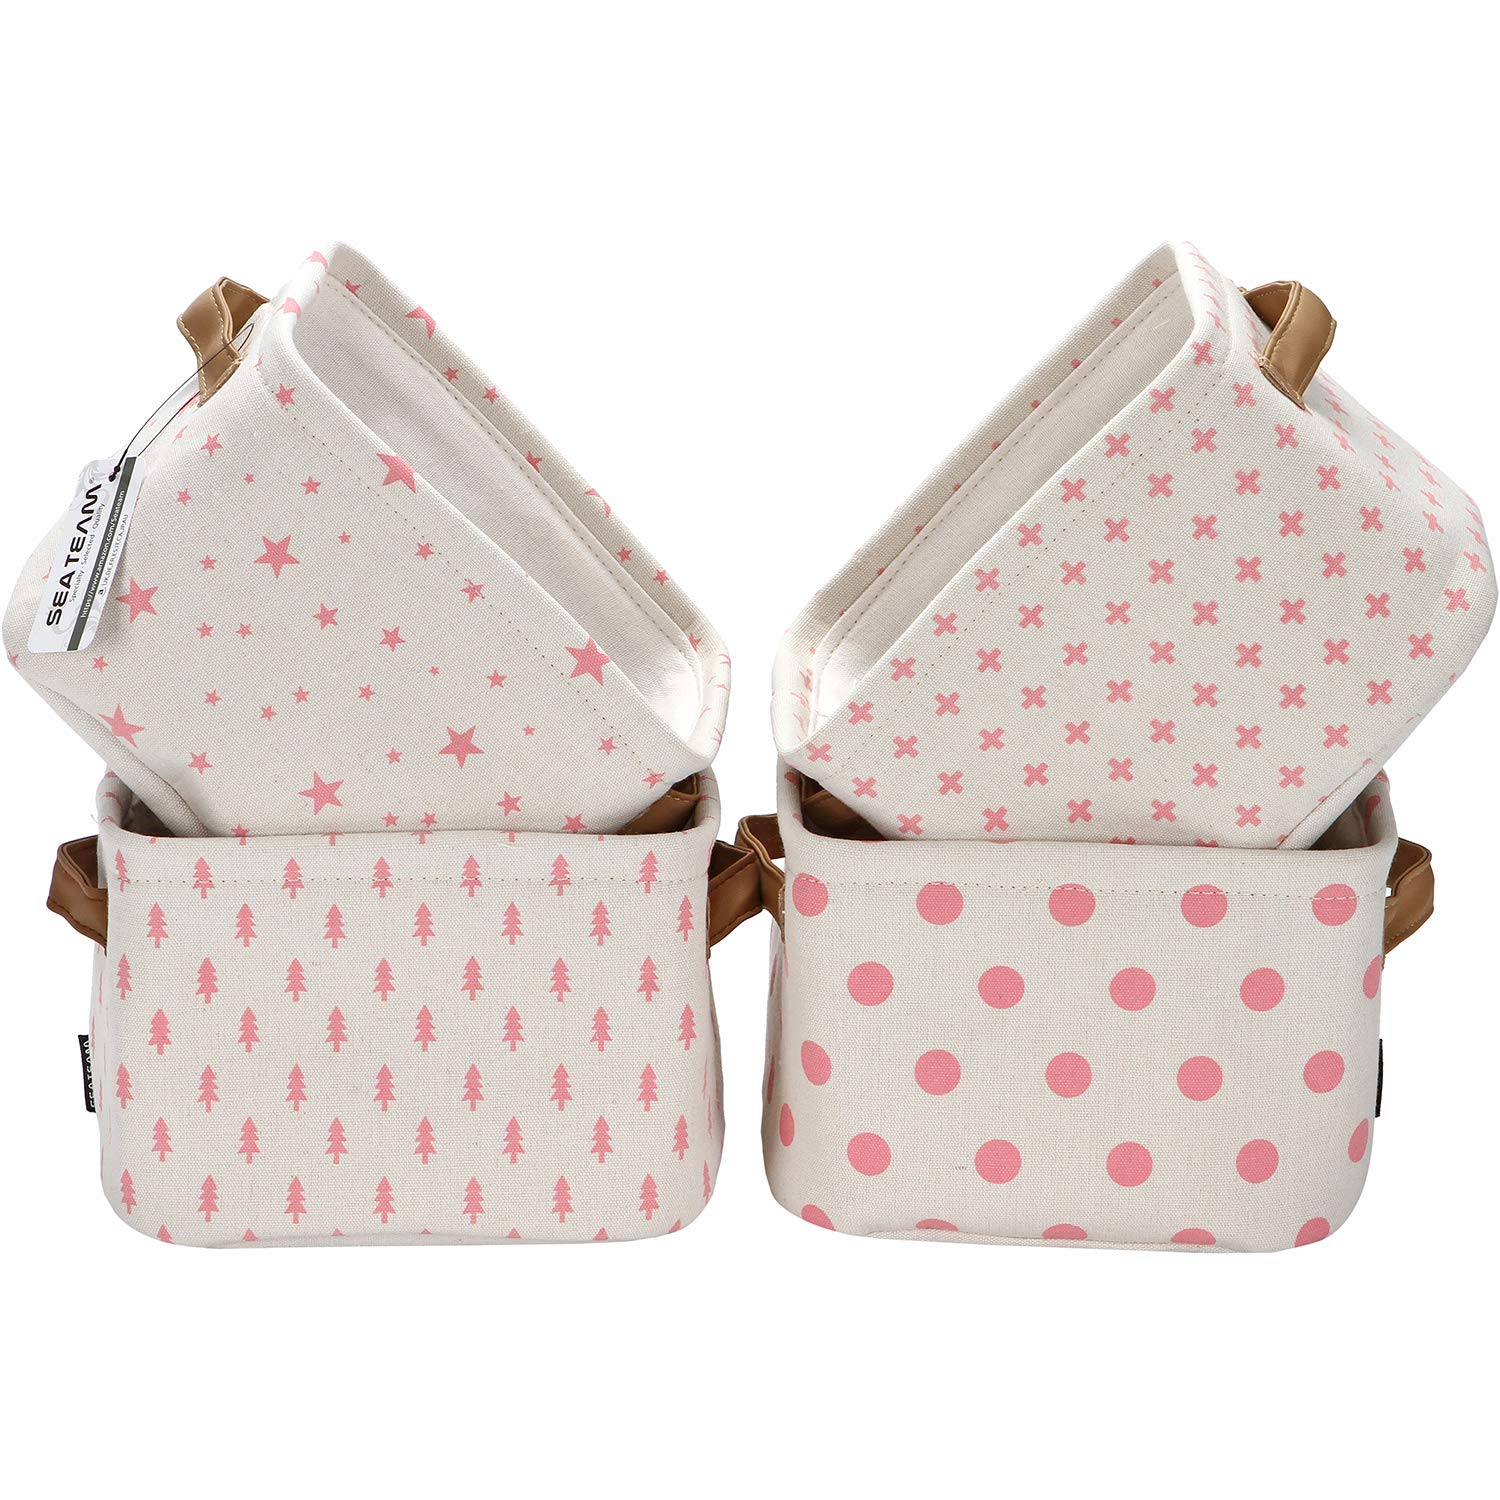 Sea Team Foldable Mini Square New Pink and White Theme 100% Natural Linen & Cotton Fabric Storage Bins Storage Baskets Organizers for Shelves & Desks - Set of 4